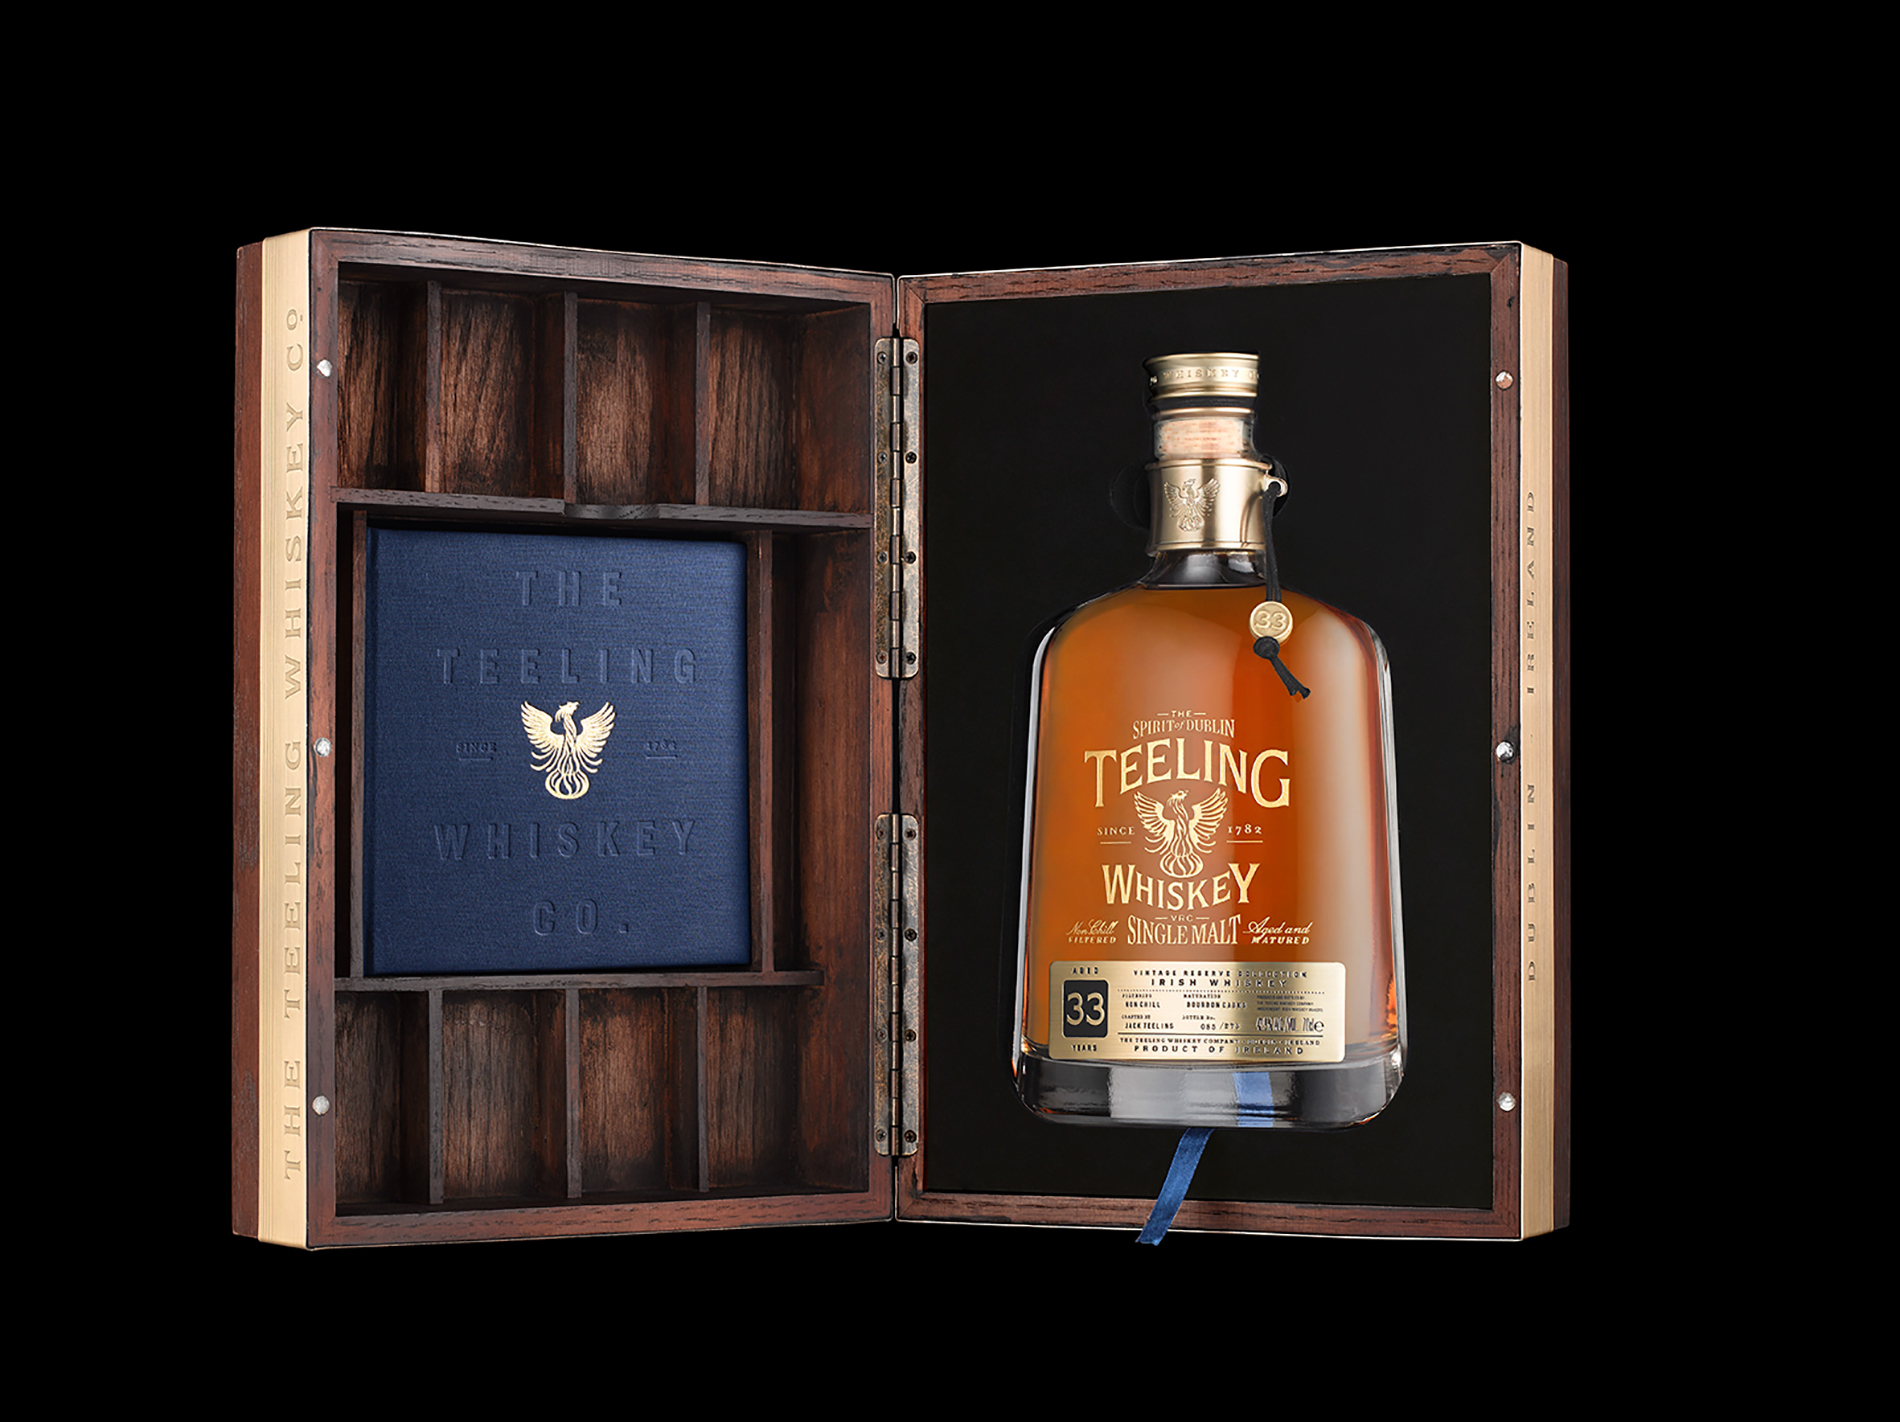 teeling-agencias-diseno-packaging-disenadoresgraficos